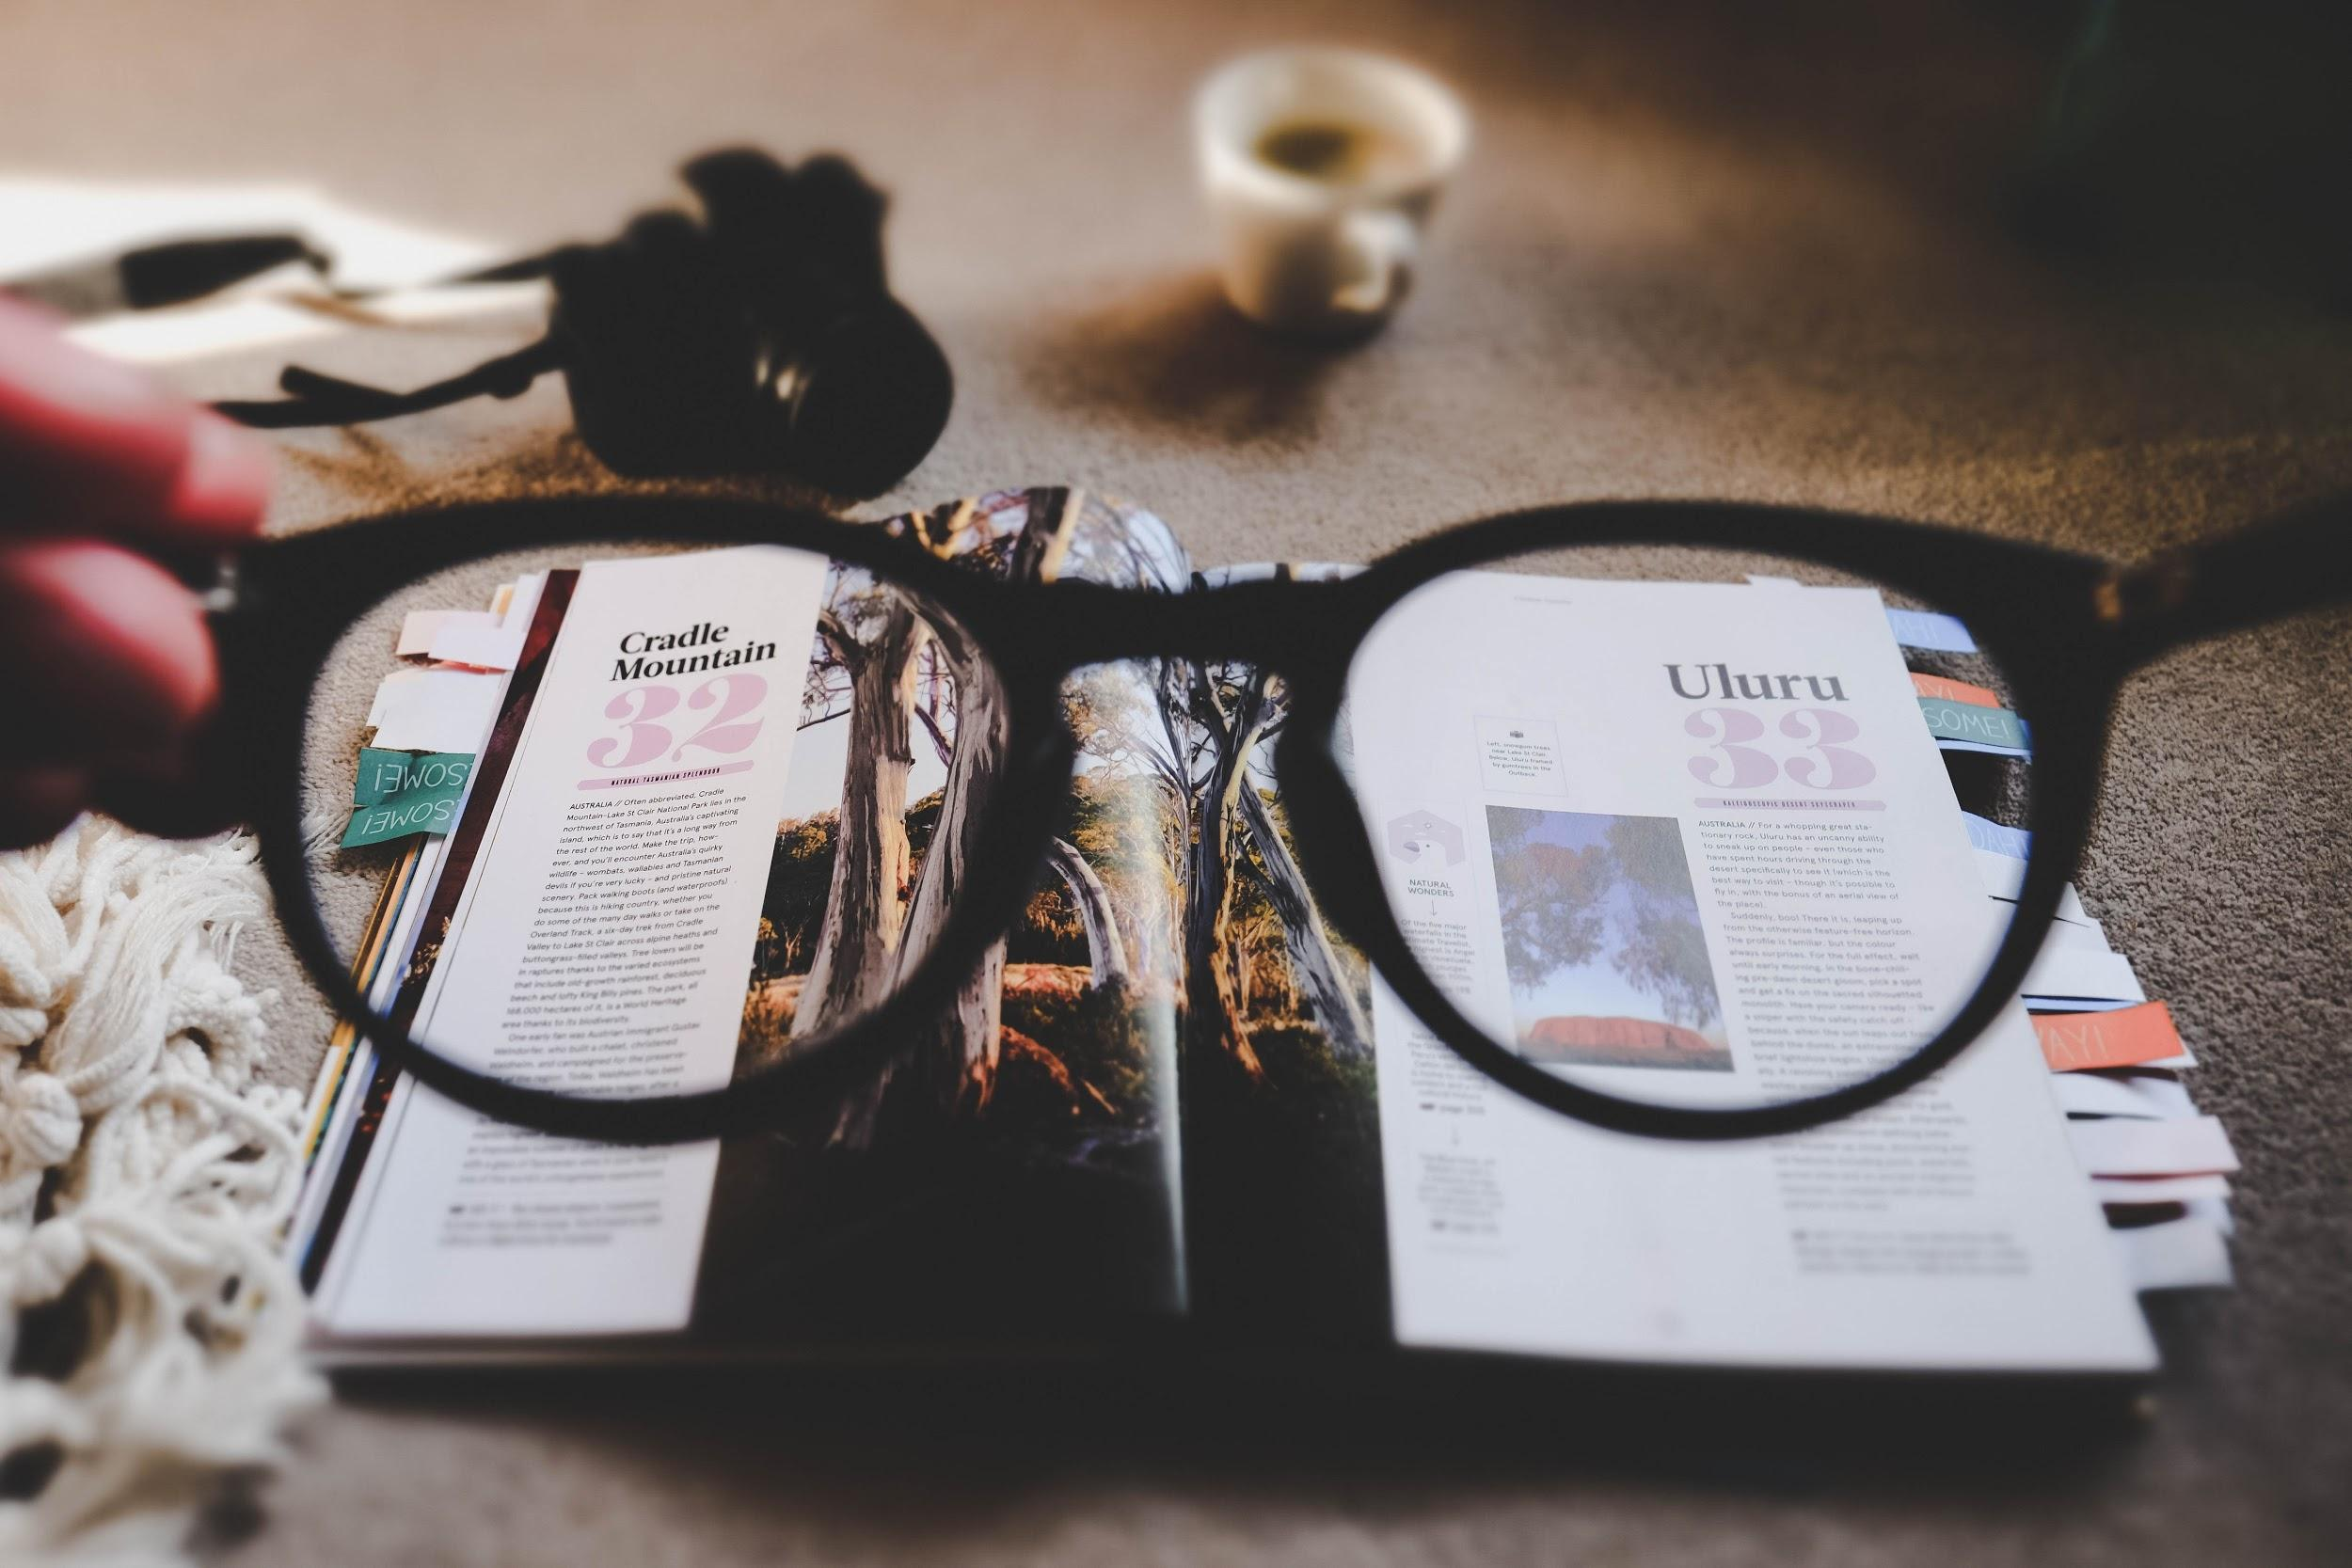 A book in focus through the glasses